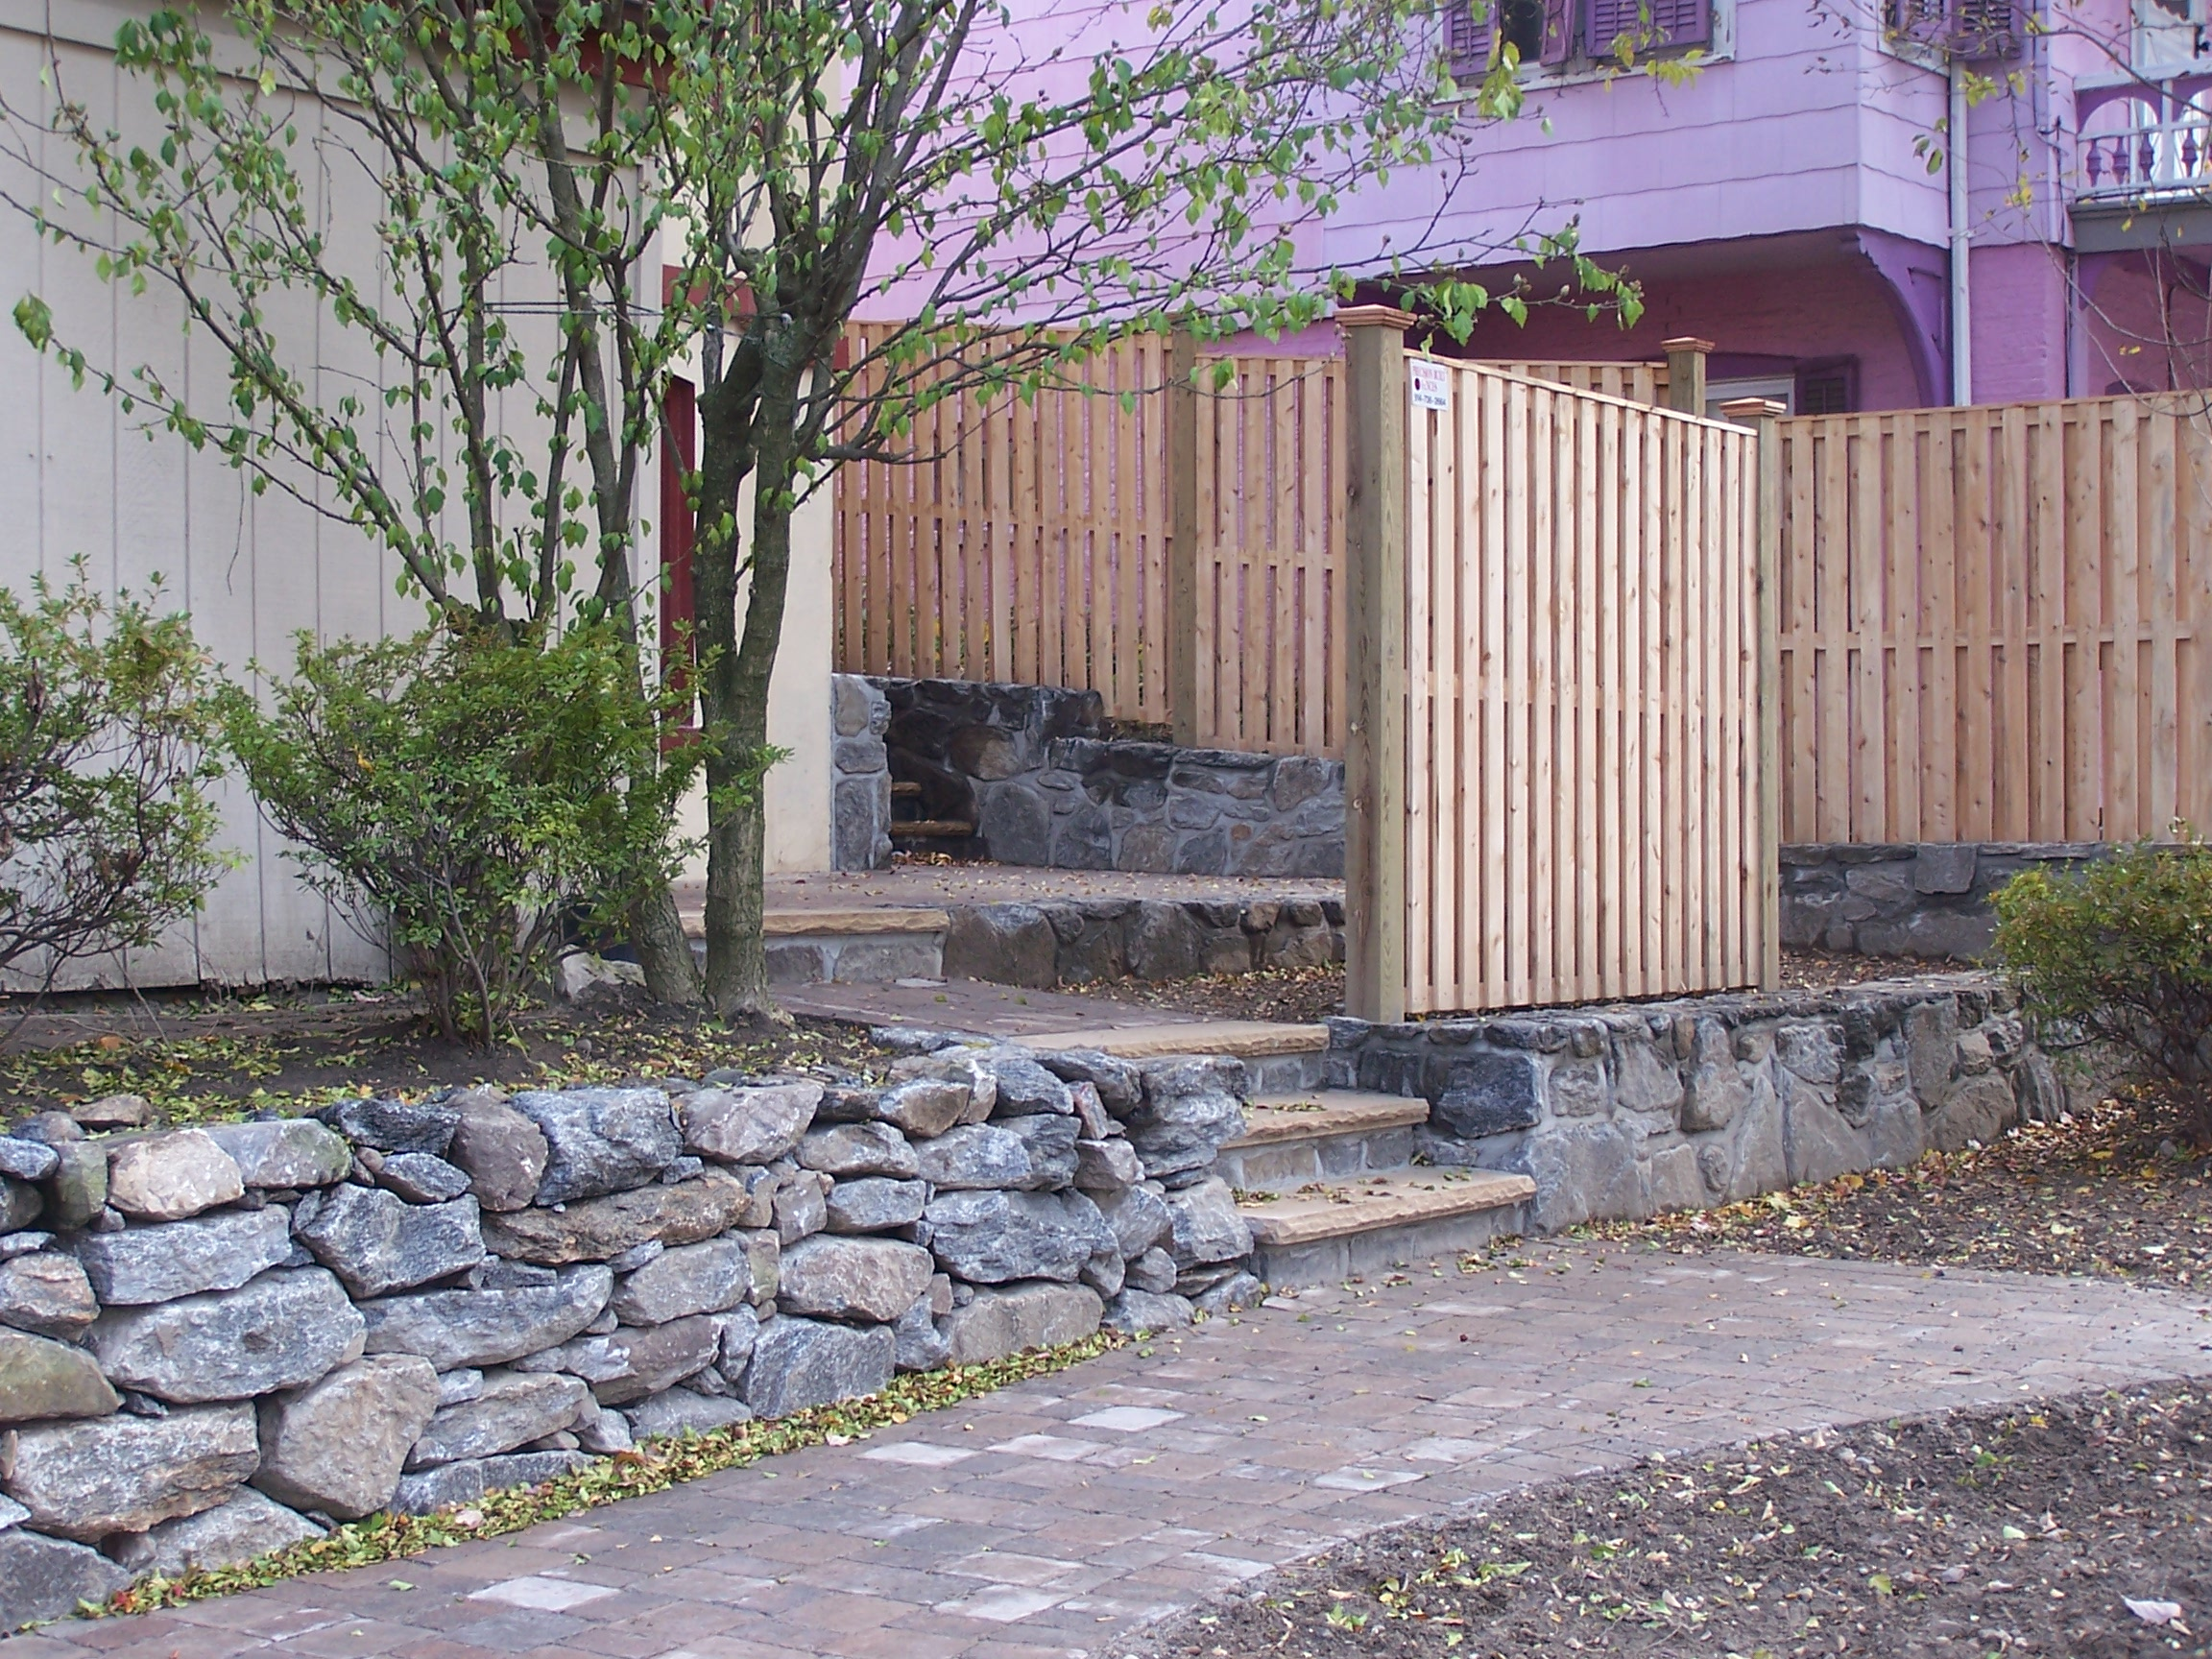 5 Landscaping Ideas for Backyard Privacy in Croton-on-Hudson ... on nursery ideas for wall, fountain ideas for wall, pantry ideas for wall, art ideas for wall, entryway ideas for wall, craft ideas for wall, storage ideas for wall, office ideas for wall,